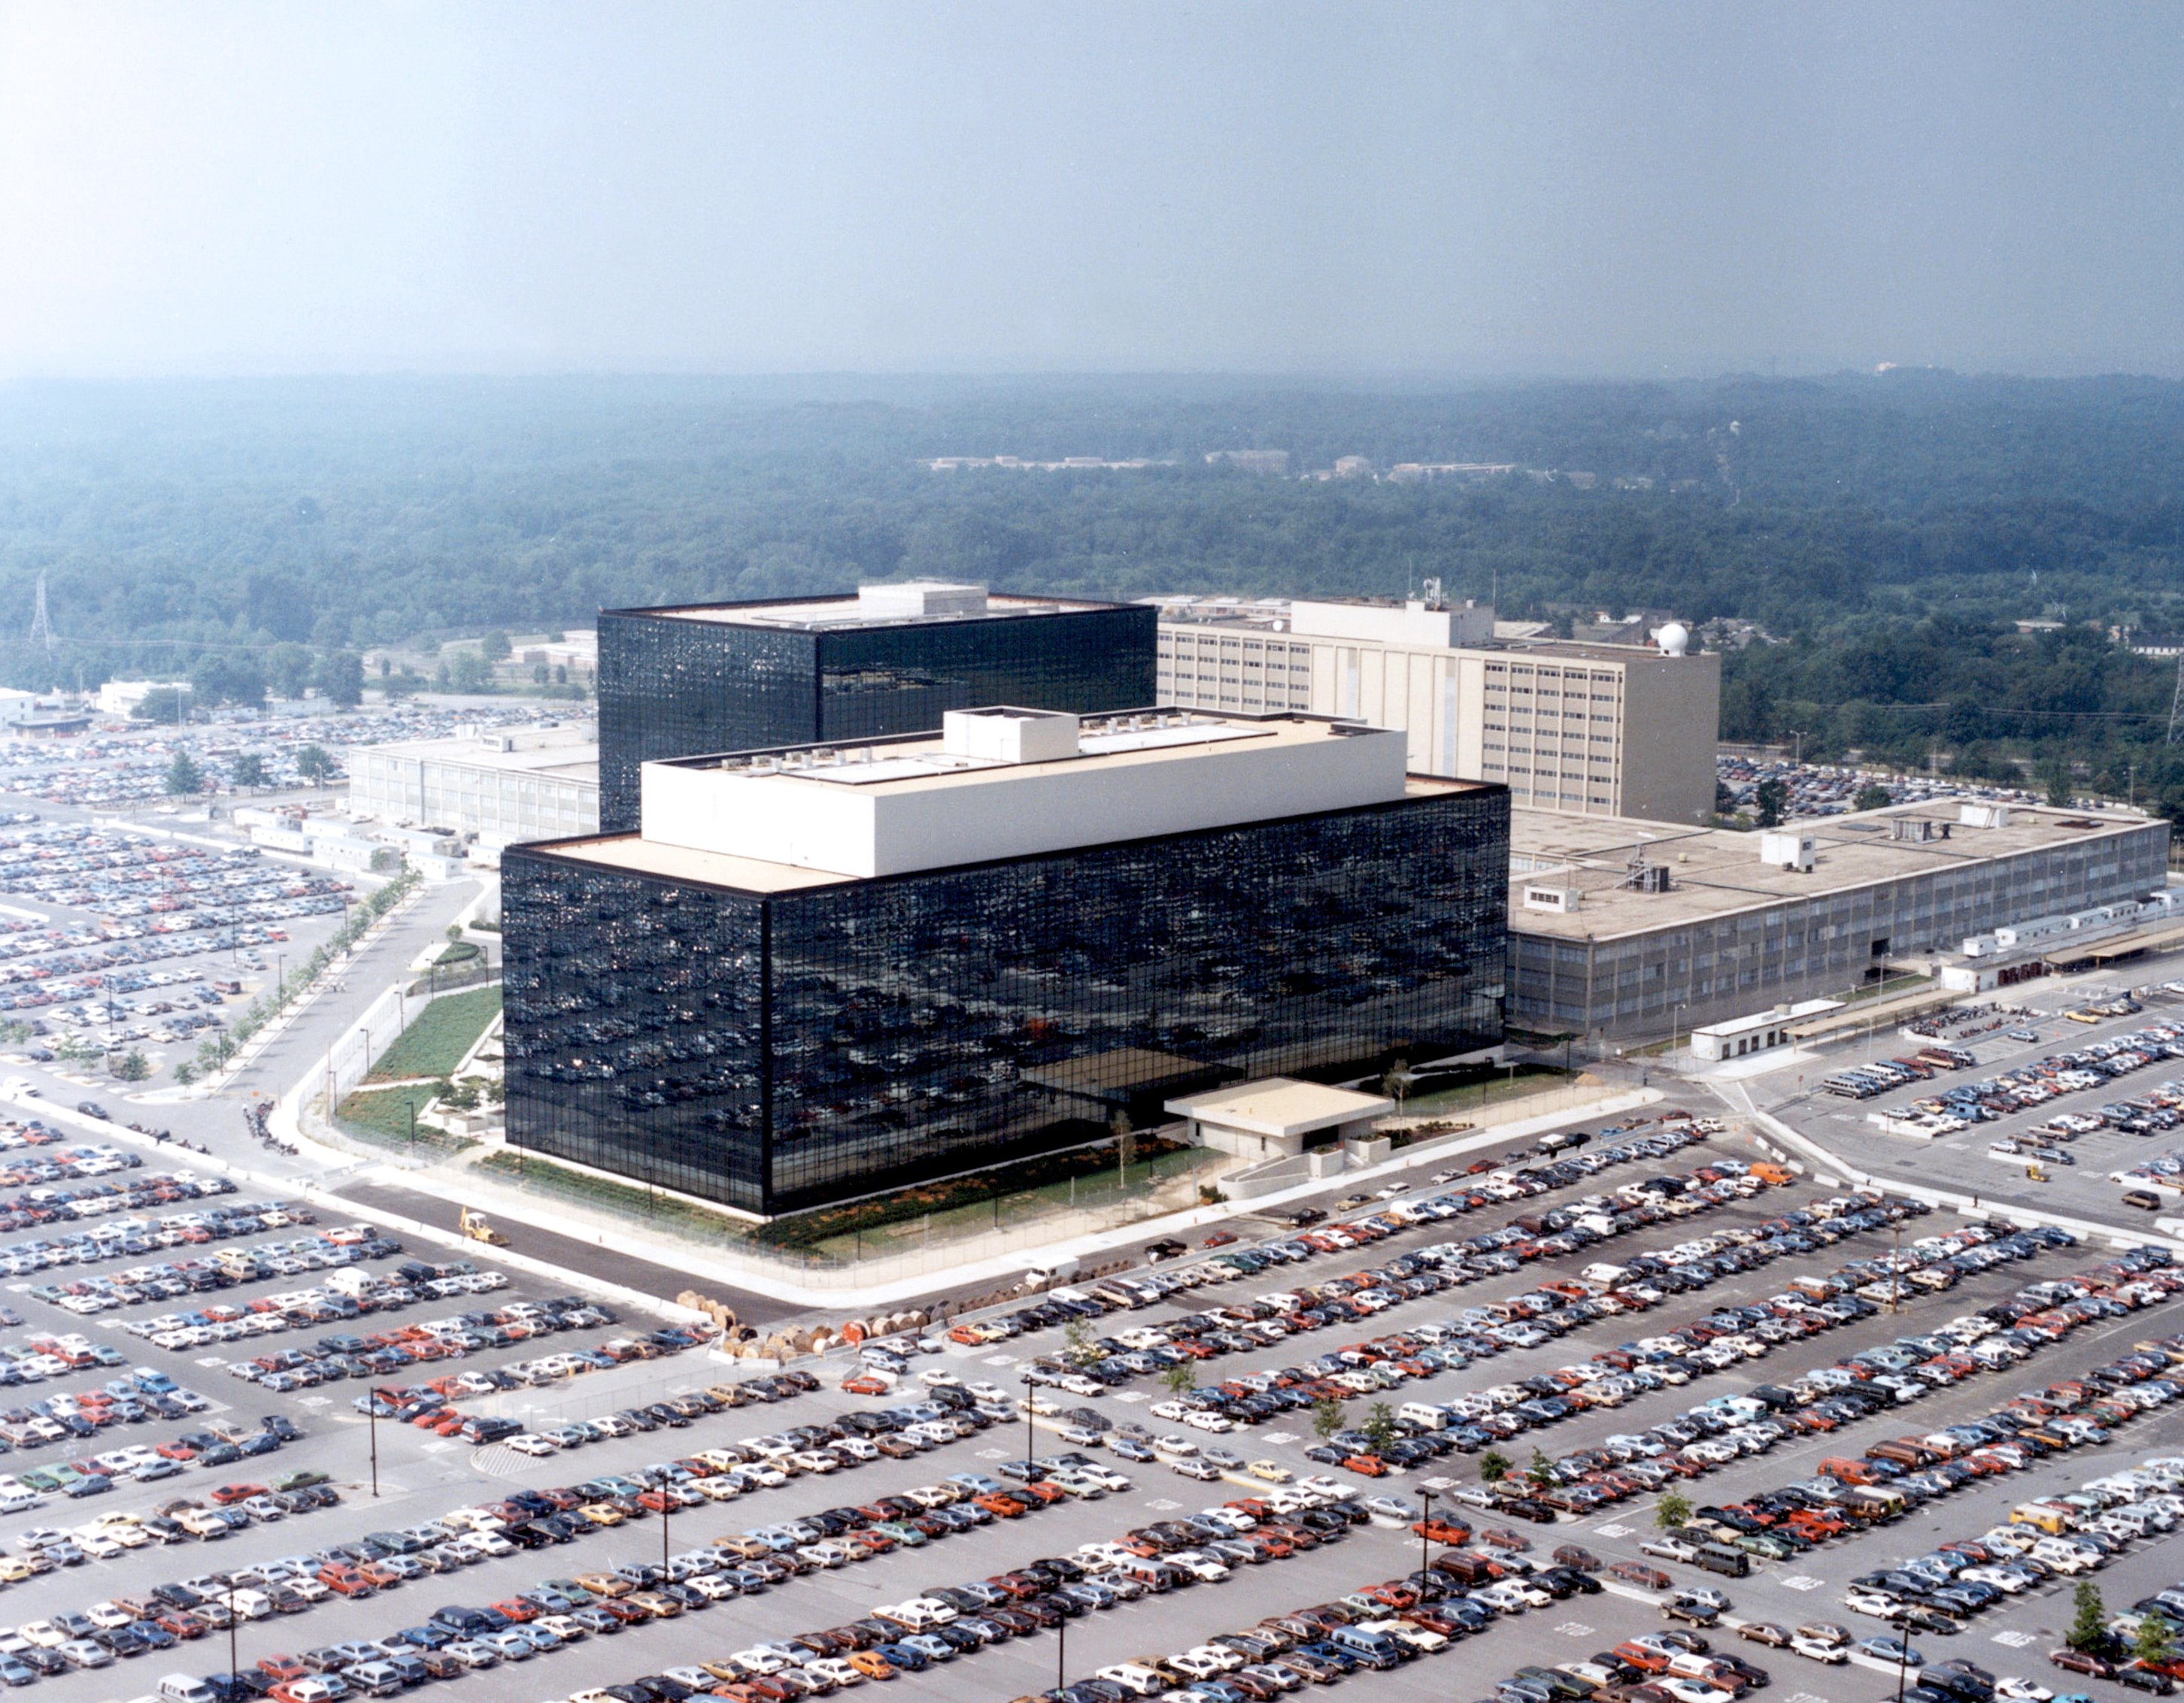 NSA Headquarters in Fort Meade, MD